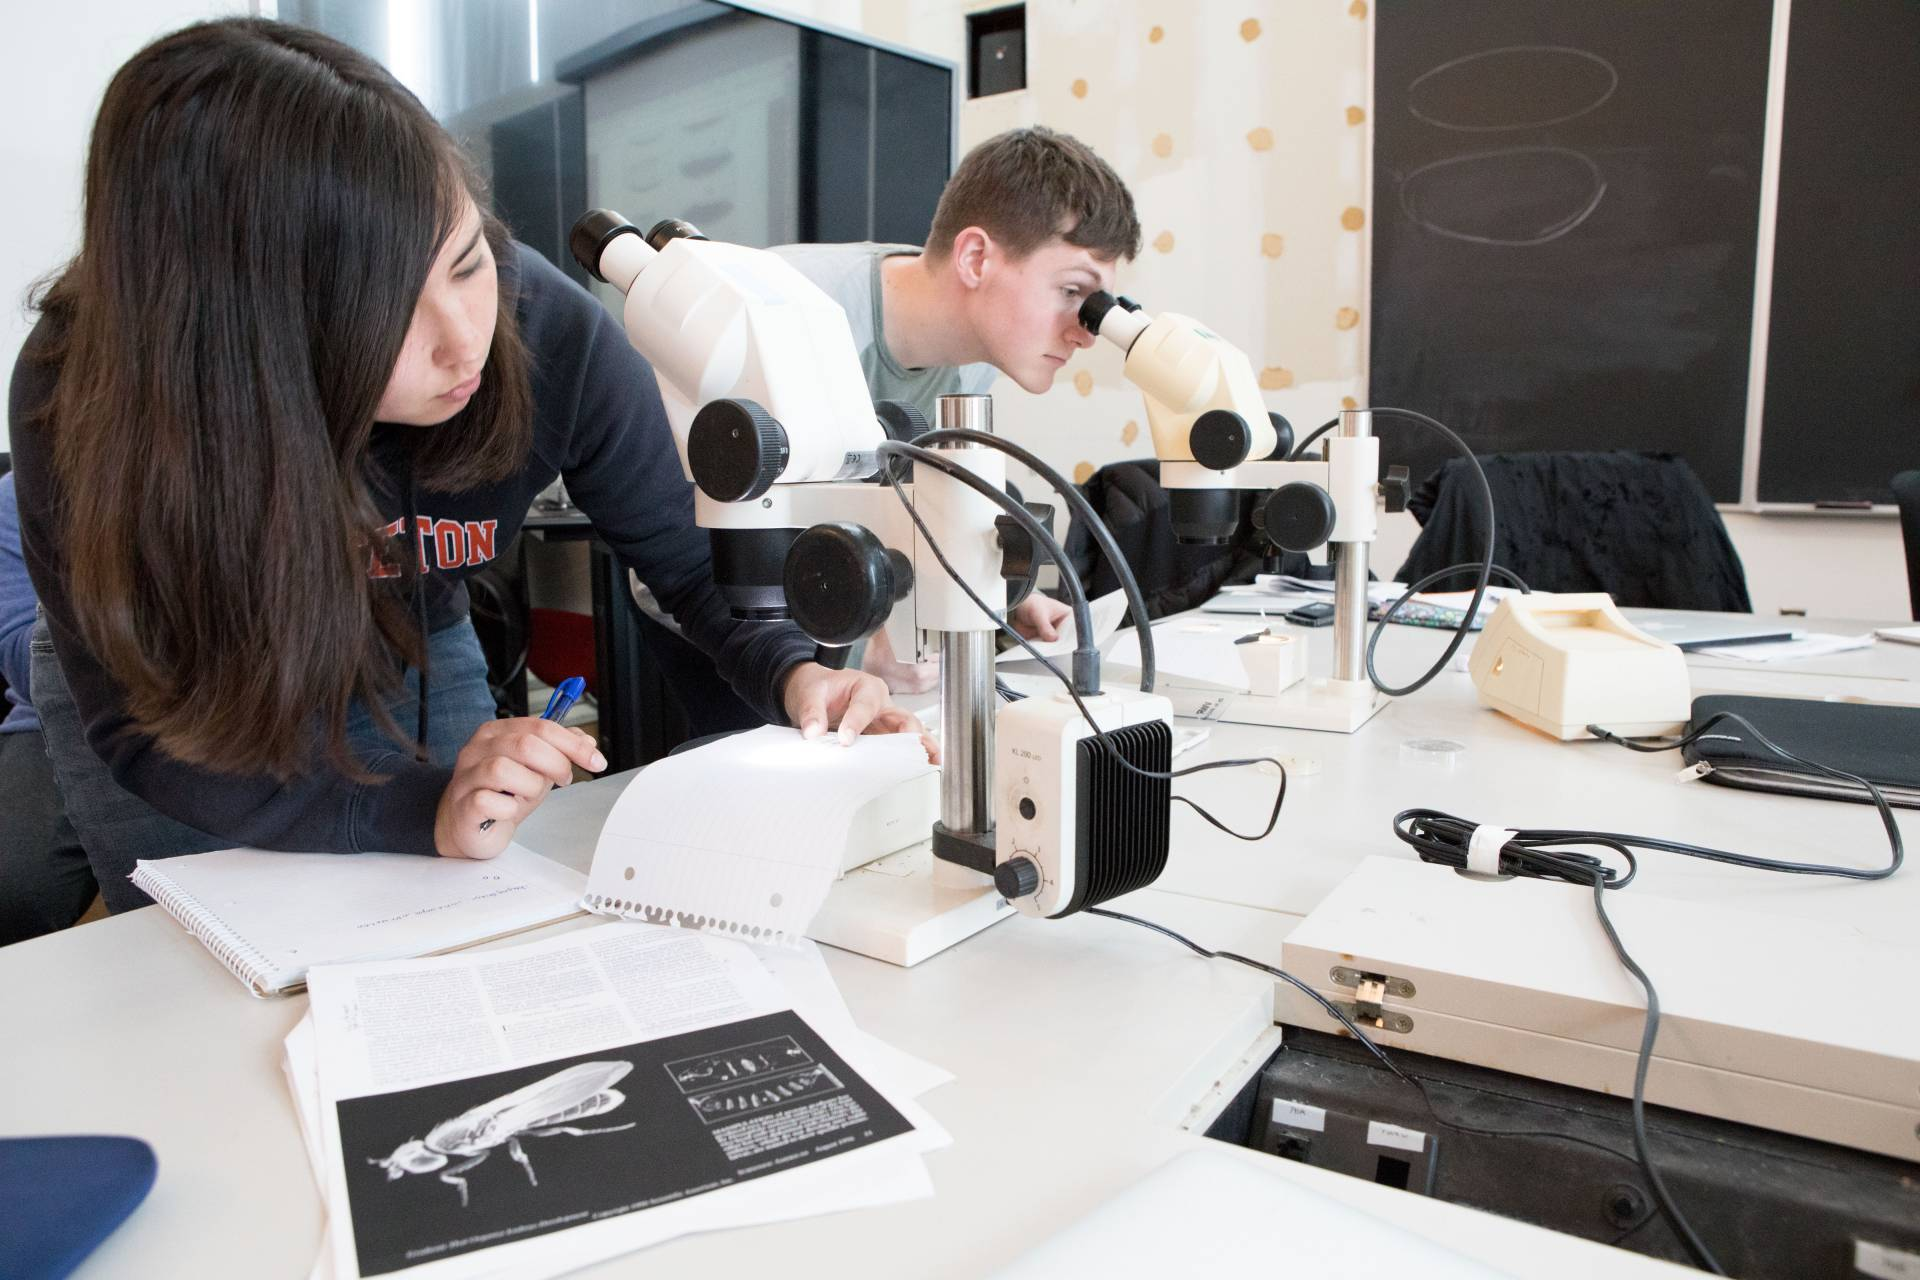 Kate Leung and Thomas Hoopes examine fruit flies under the microscope